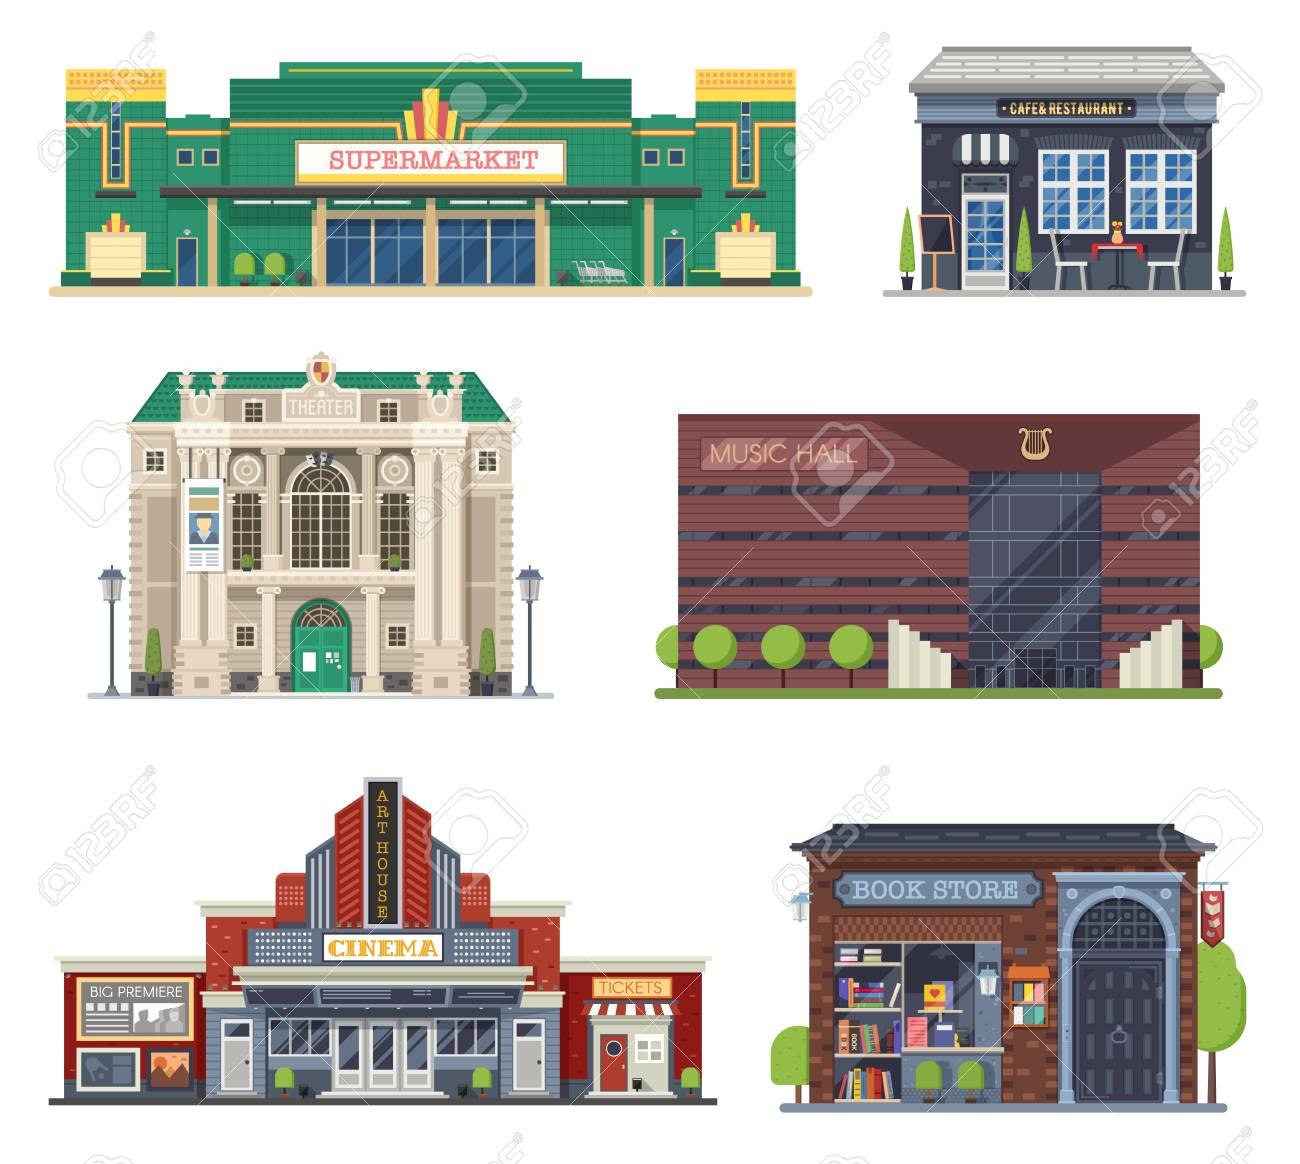 Cartoon City Public Buildings Collection For Culture And Entertainment Stock Photo Picture And Royalty Free Image Image 93874845